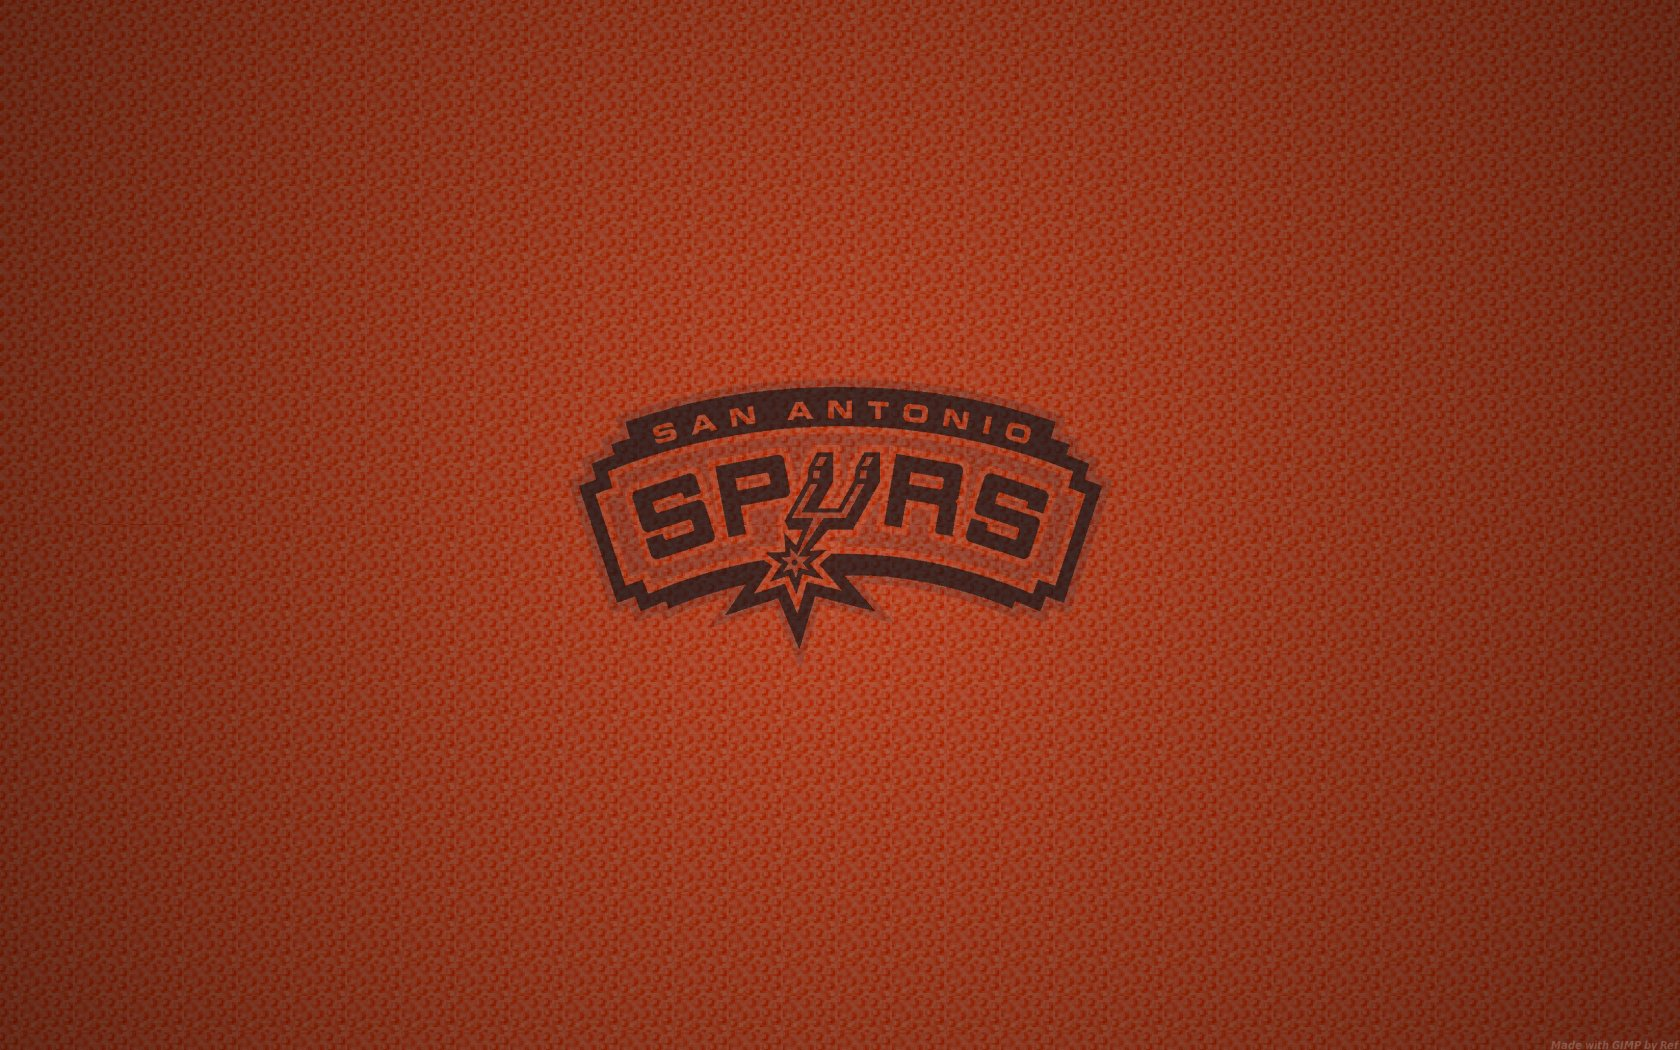 San Antonio Spurs Simple Wallpaper   Desktop Wallpaper 1680x1050